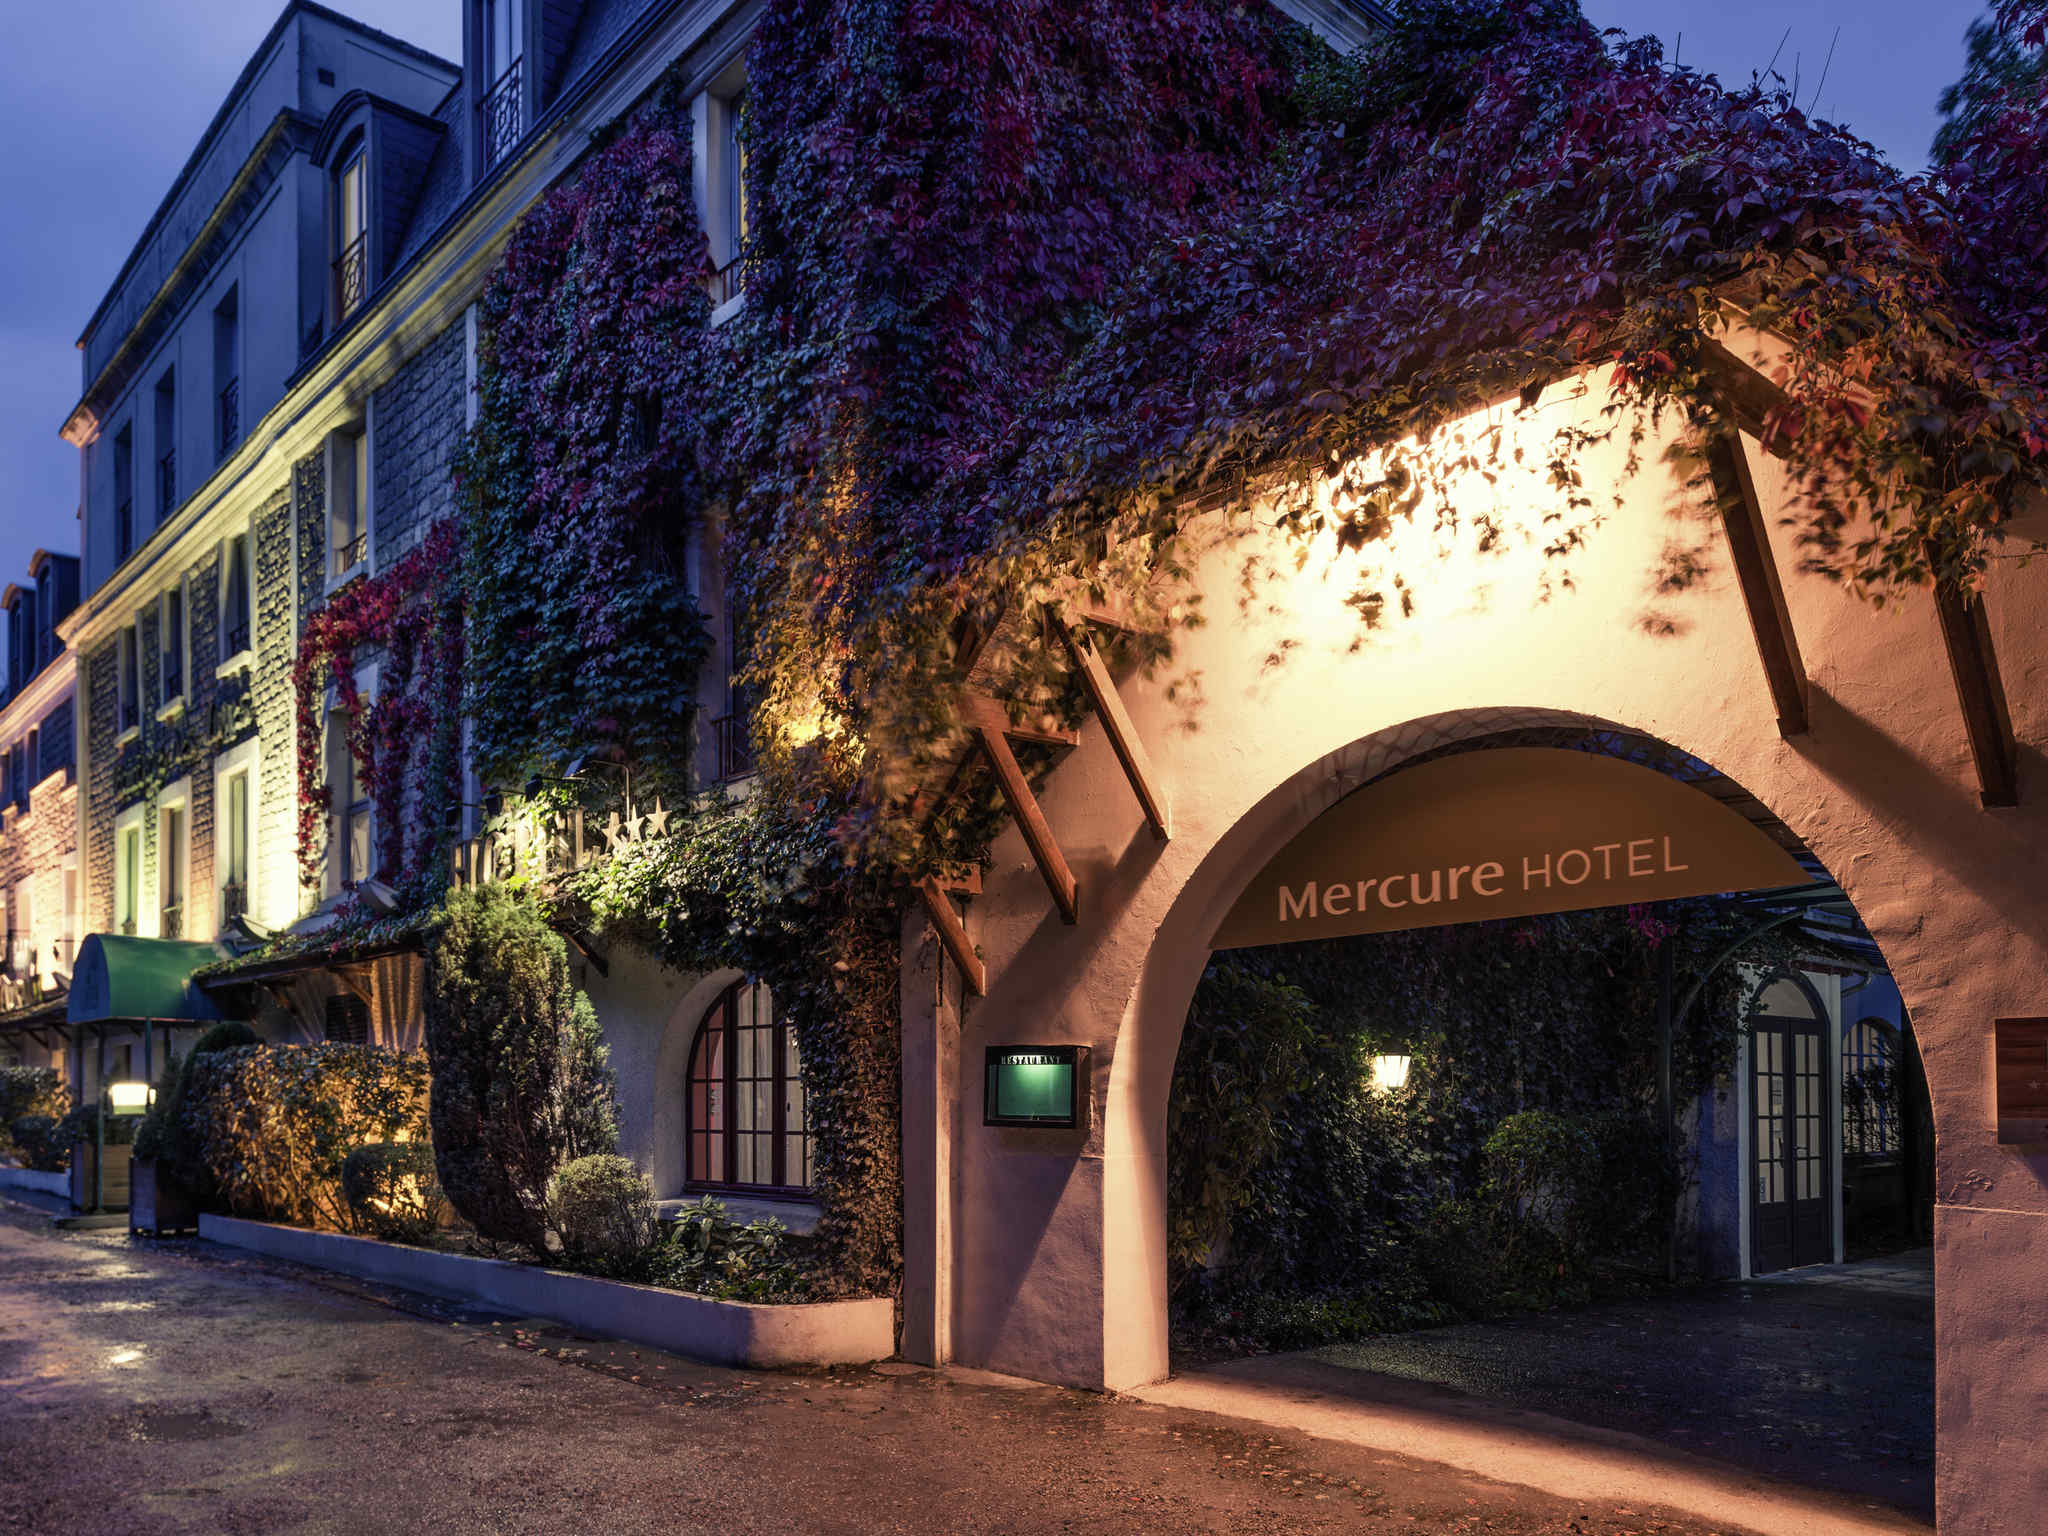 Hotel – Hôtel Mercure Paris Ouest Saint-Germain